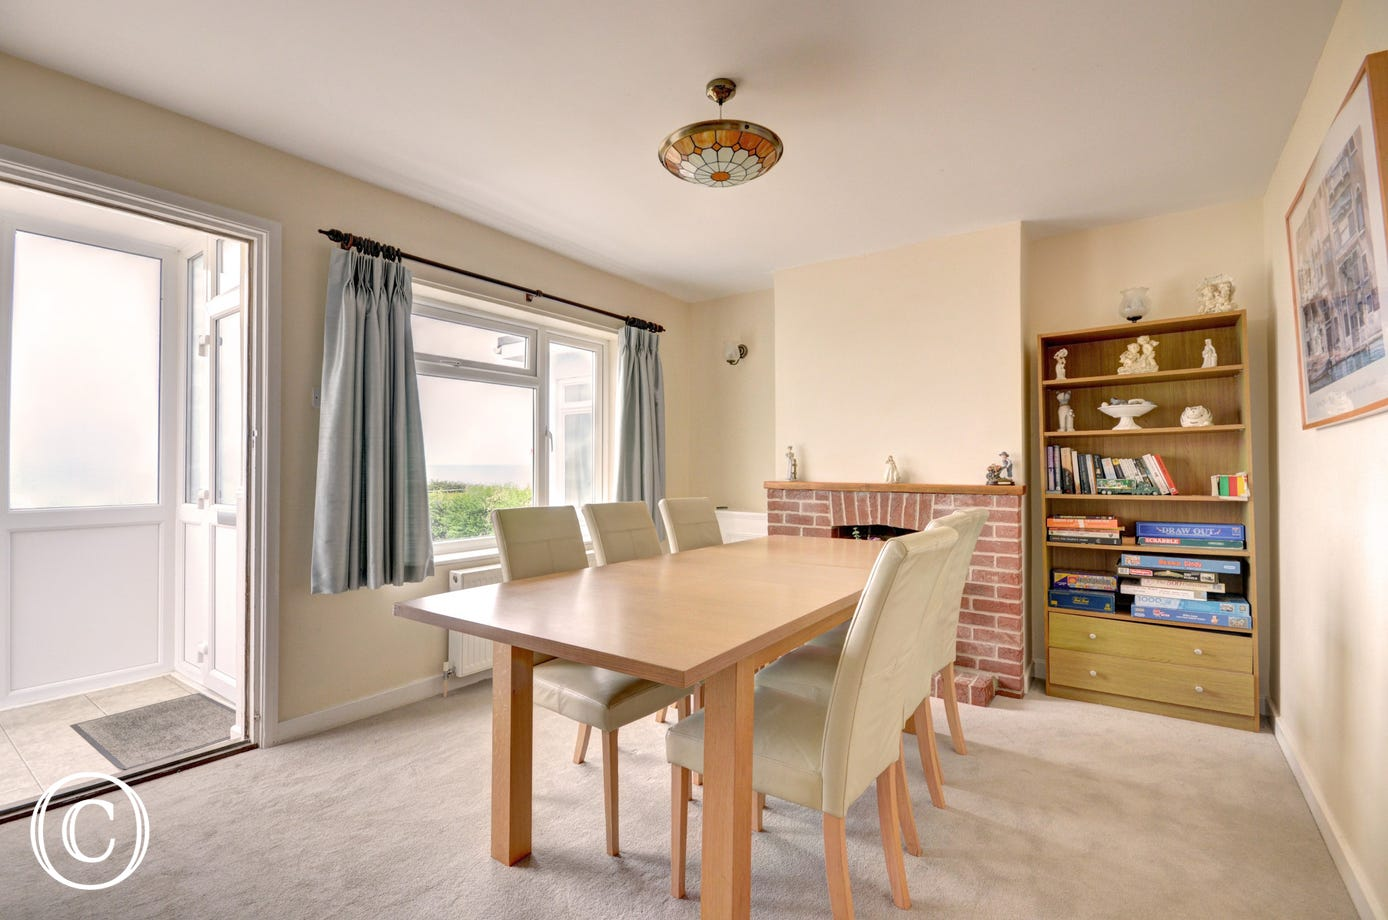 Dining Room with table and chairs - the perfect spot to enjoy a meal whilst planning the next days adventure!